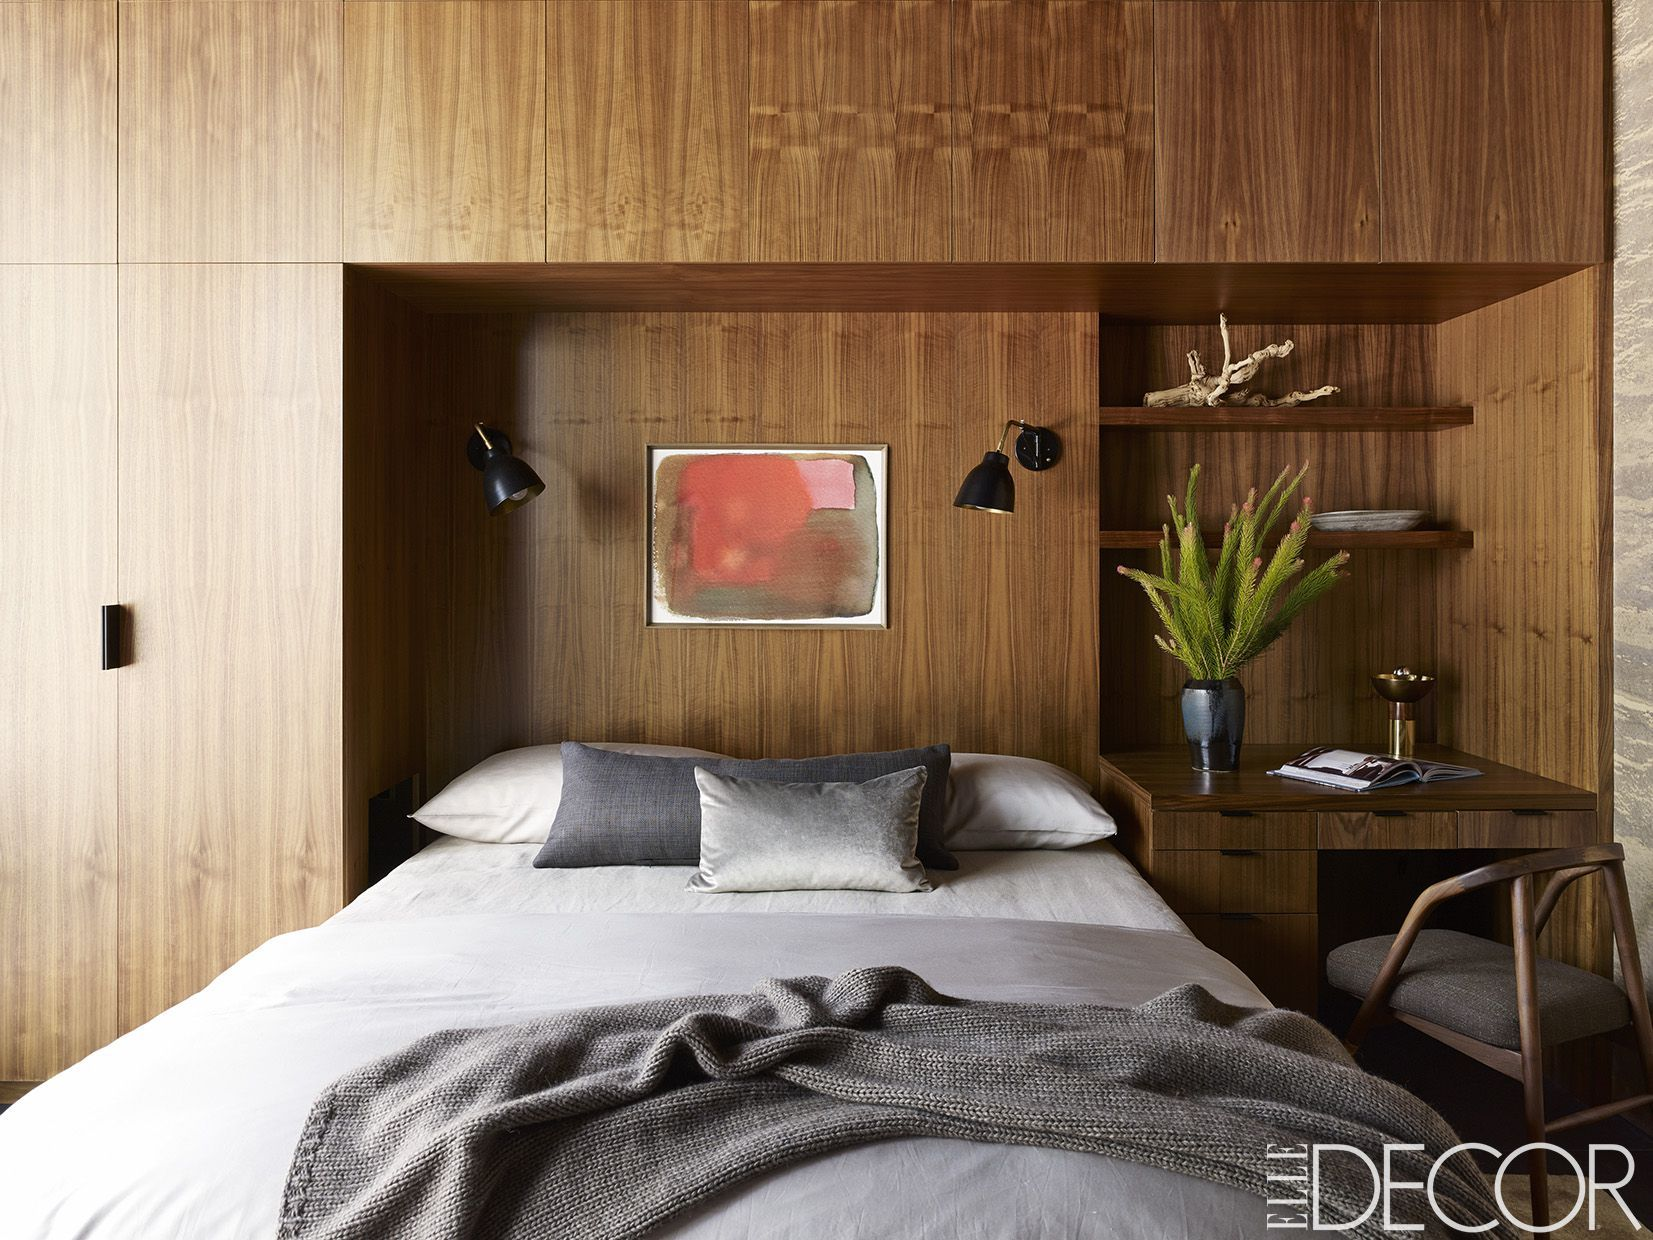 Interior Design Bed Room Images